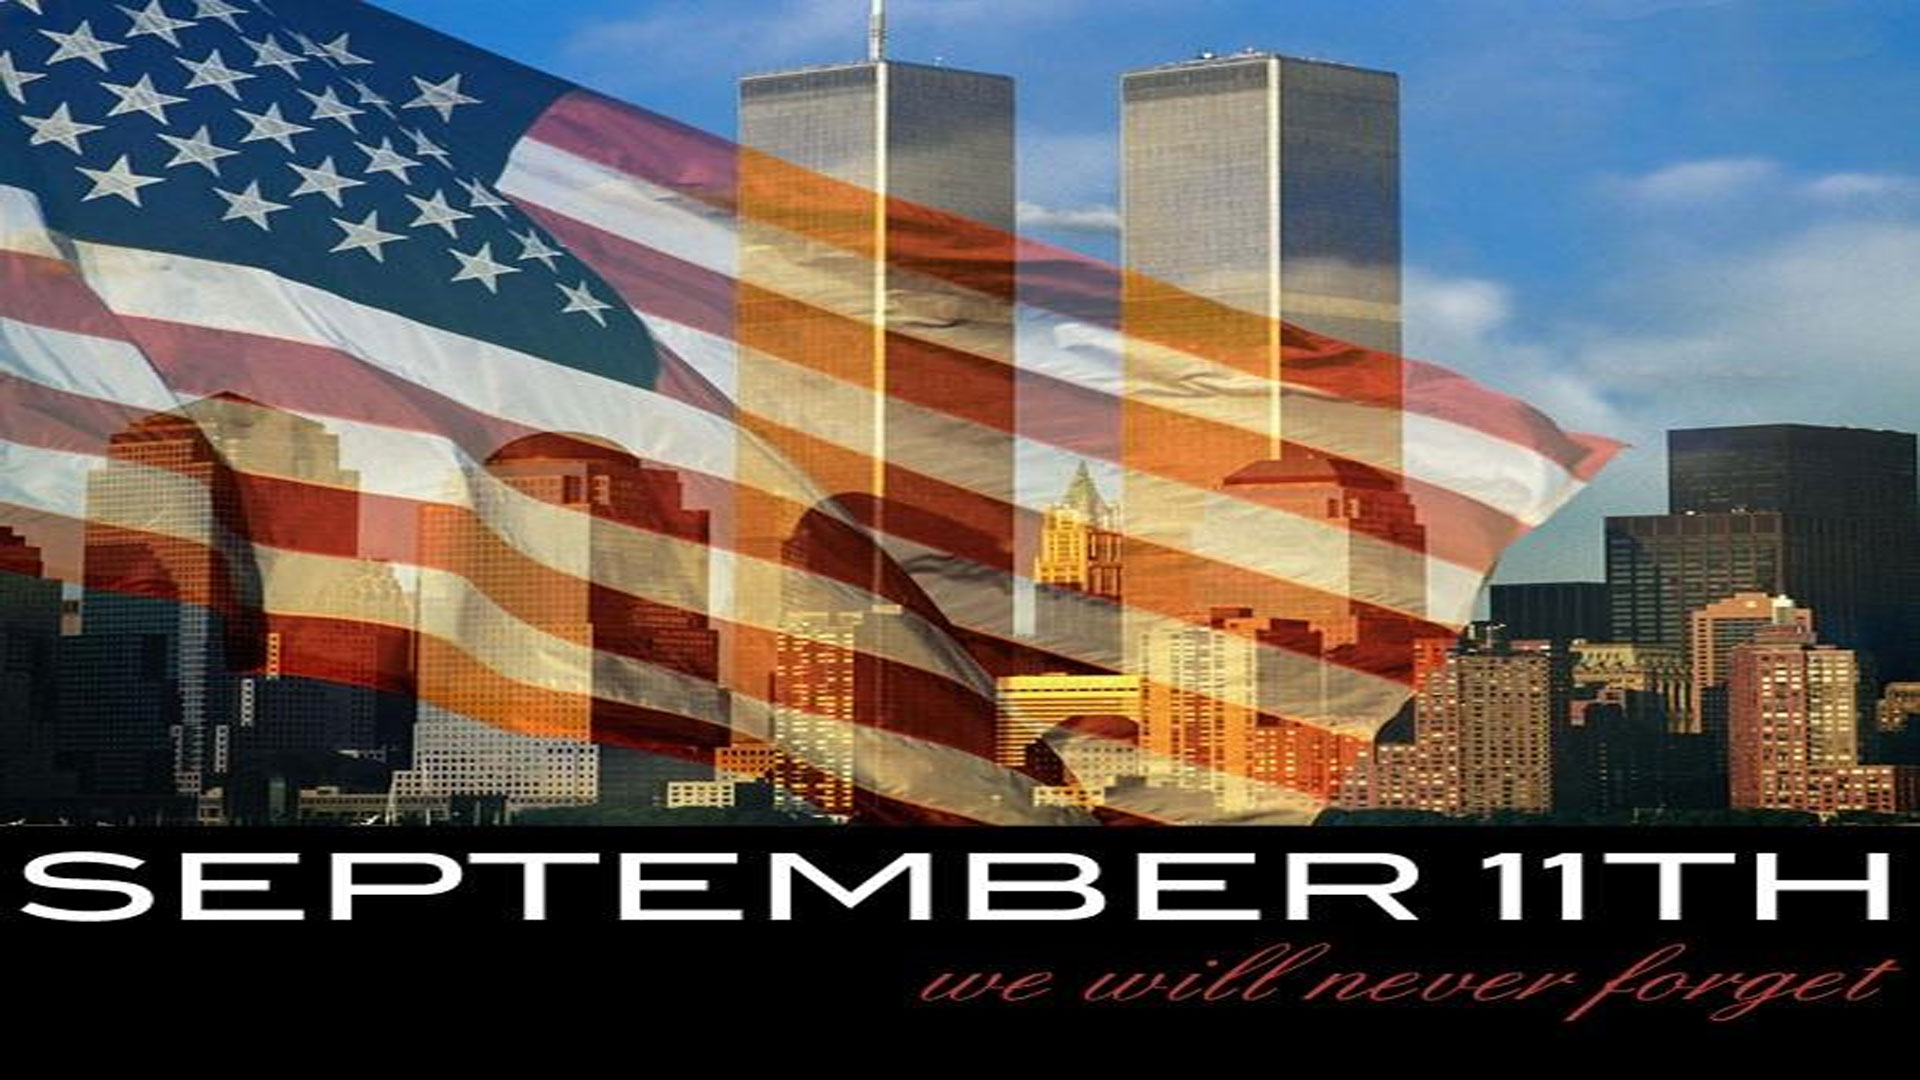 September 11 Post – In Remembrance Submitted by Fred Klein